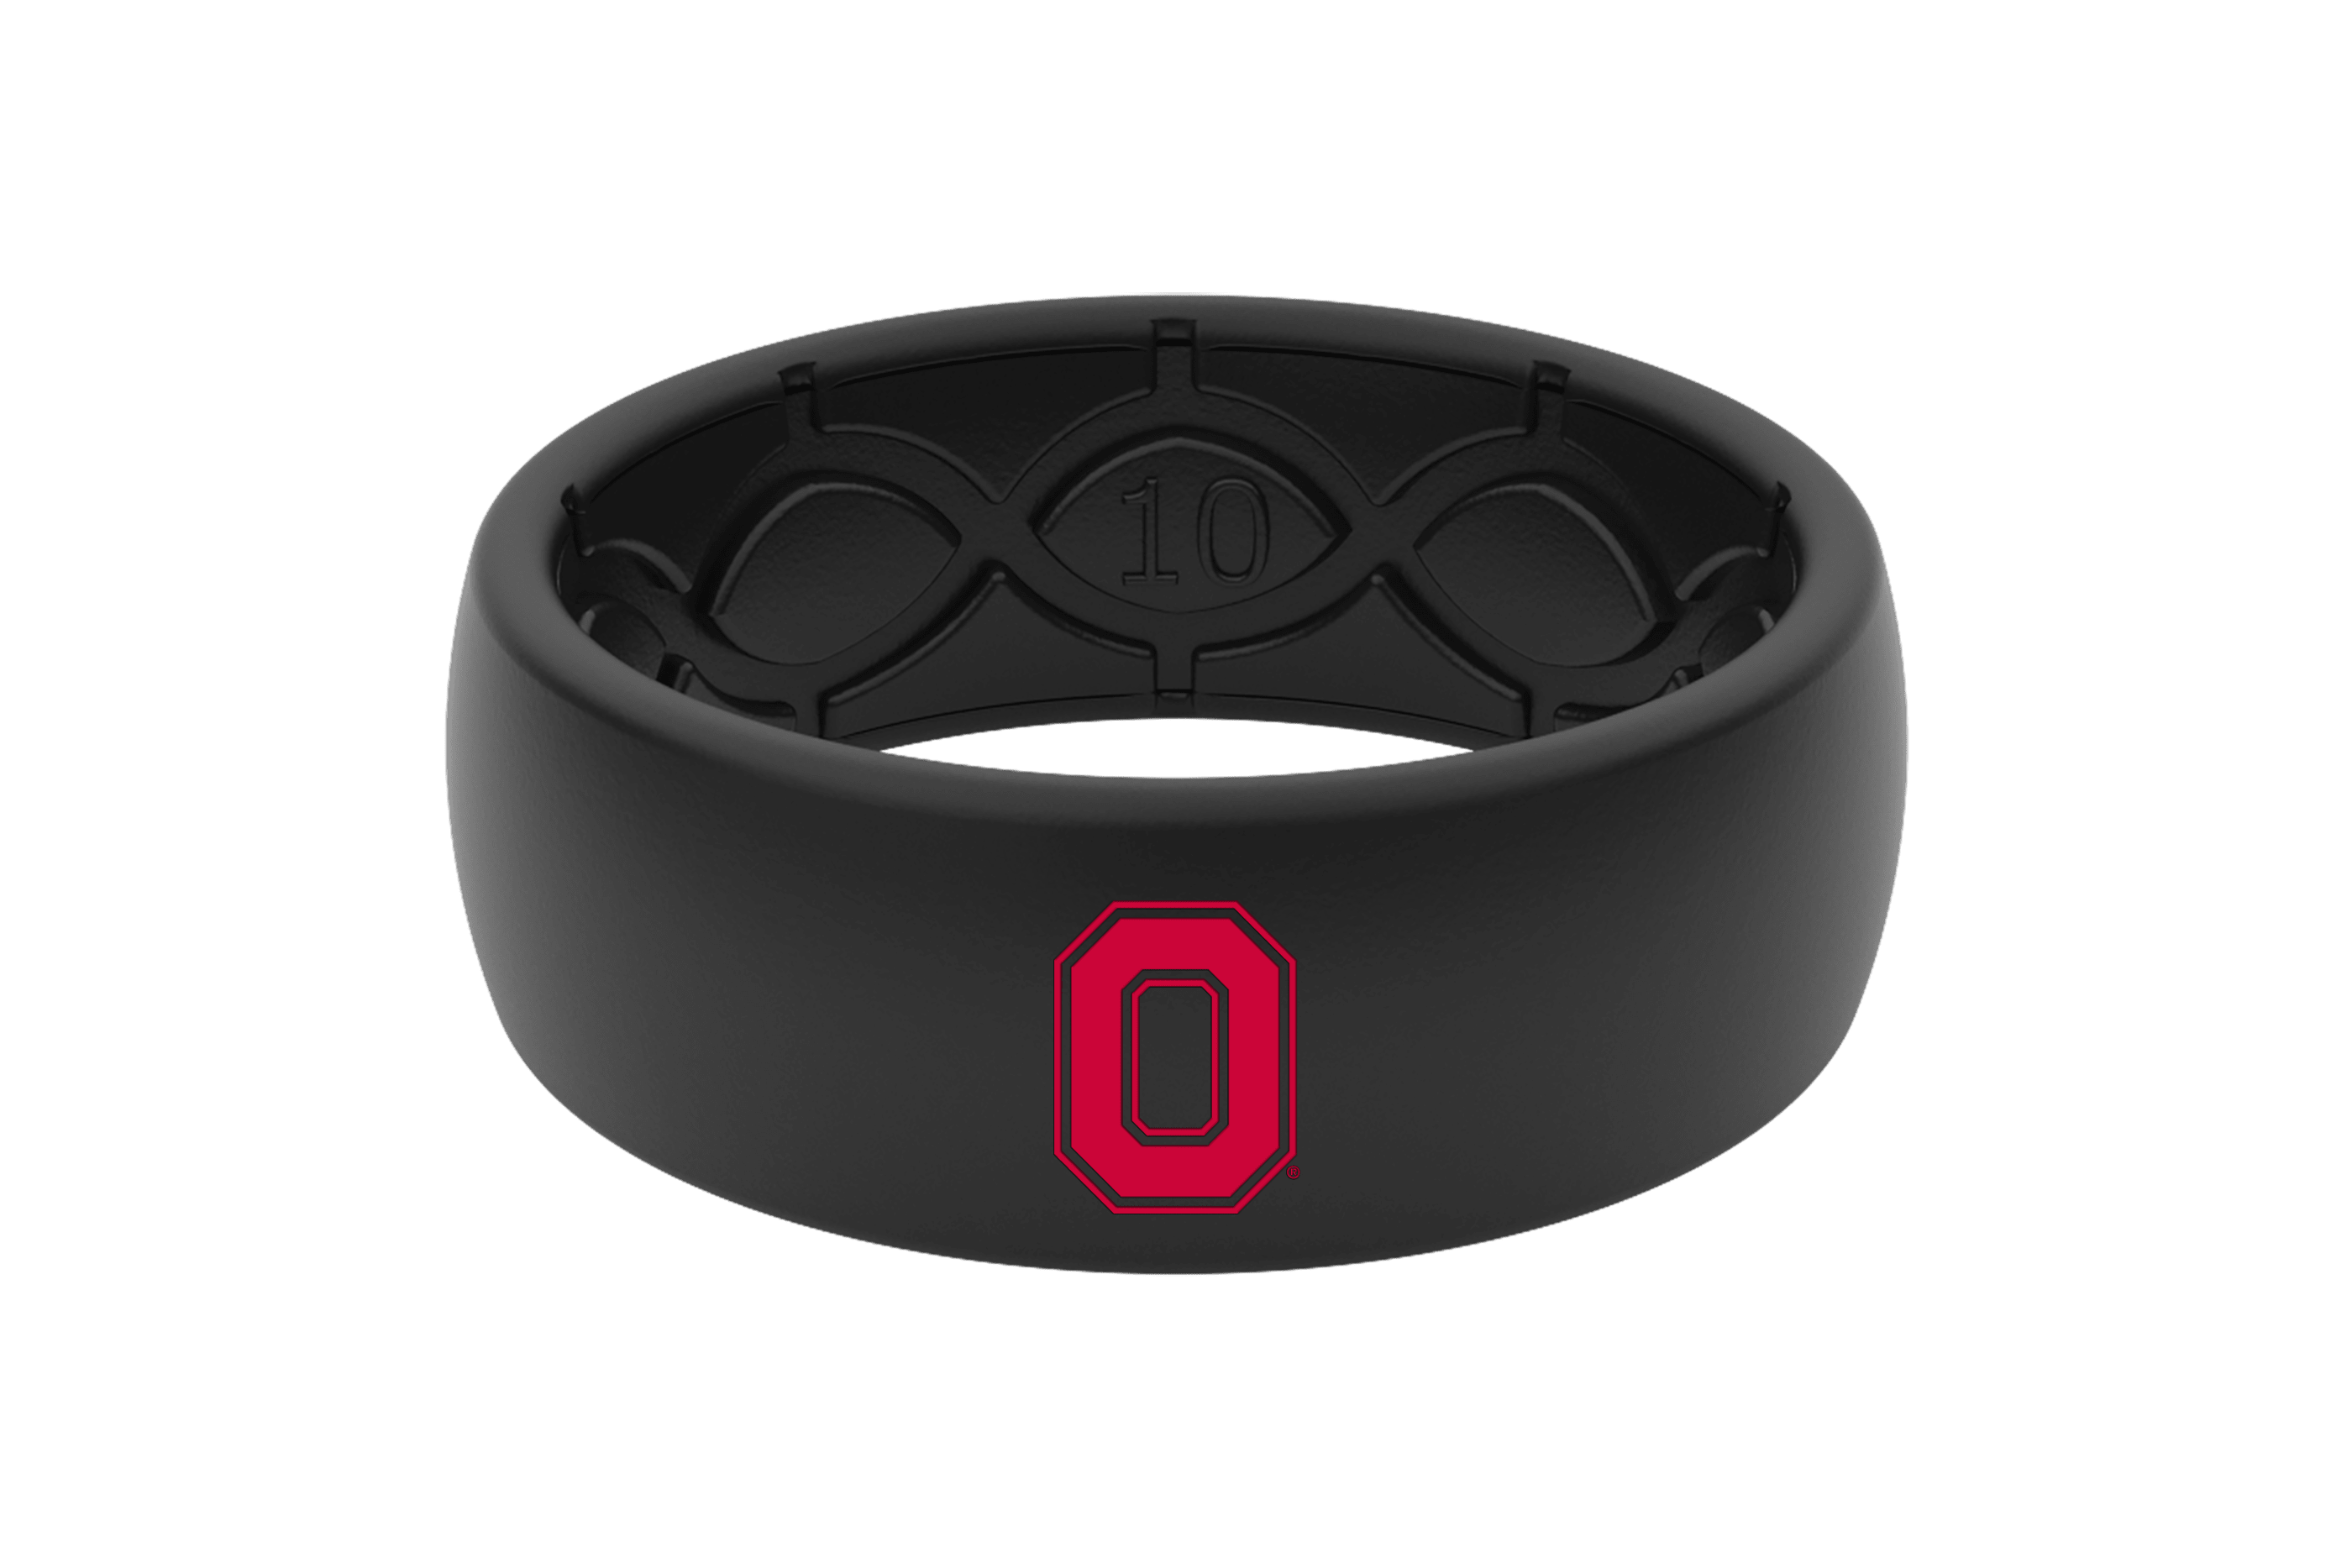 Ohio State College ring with black color fill viewed front on